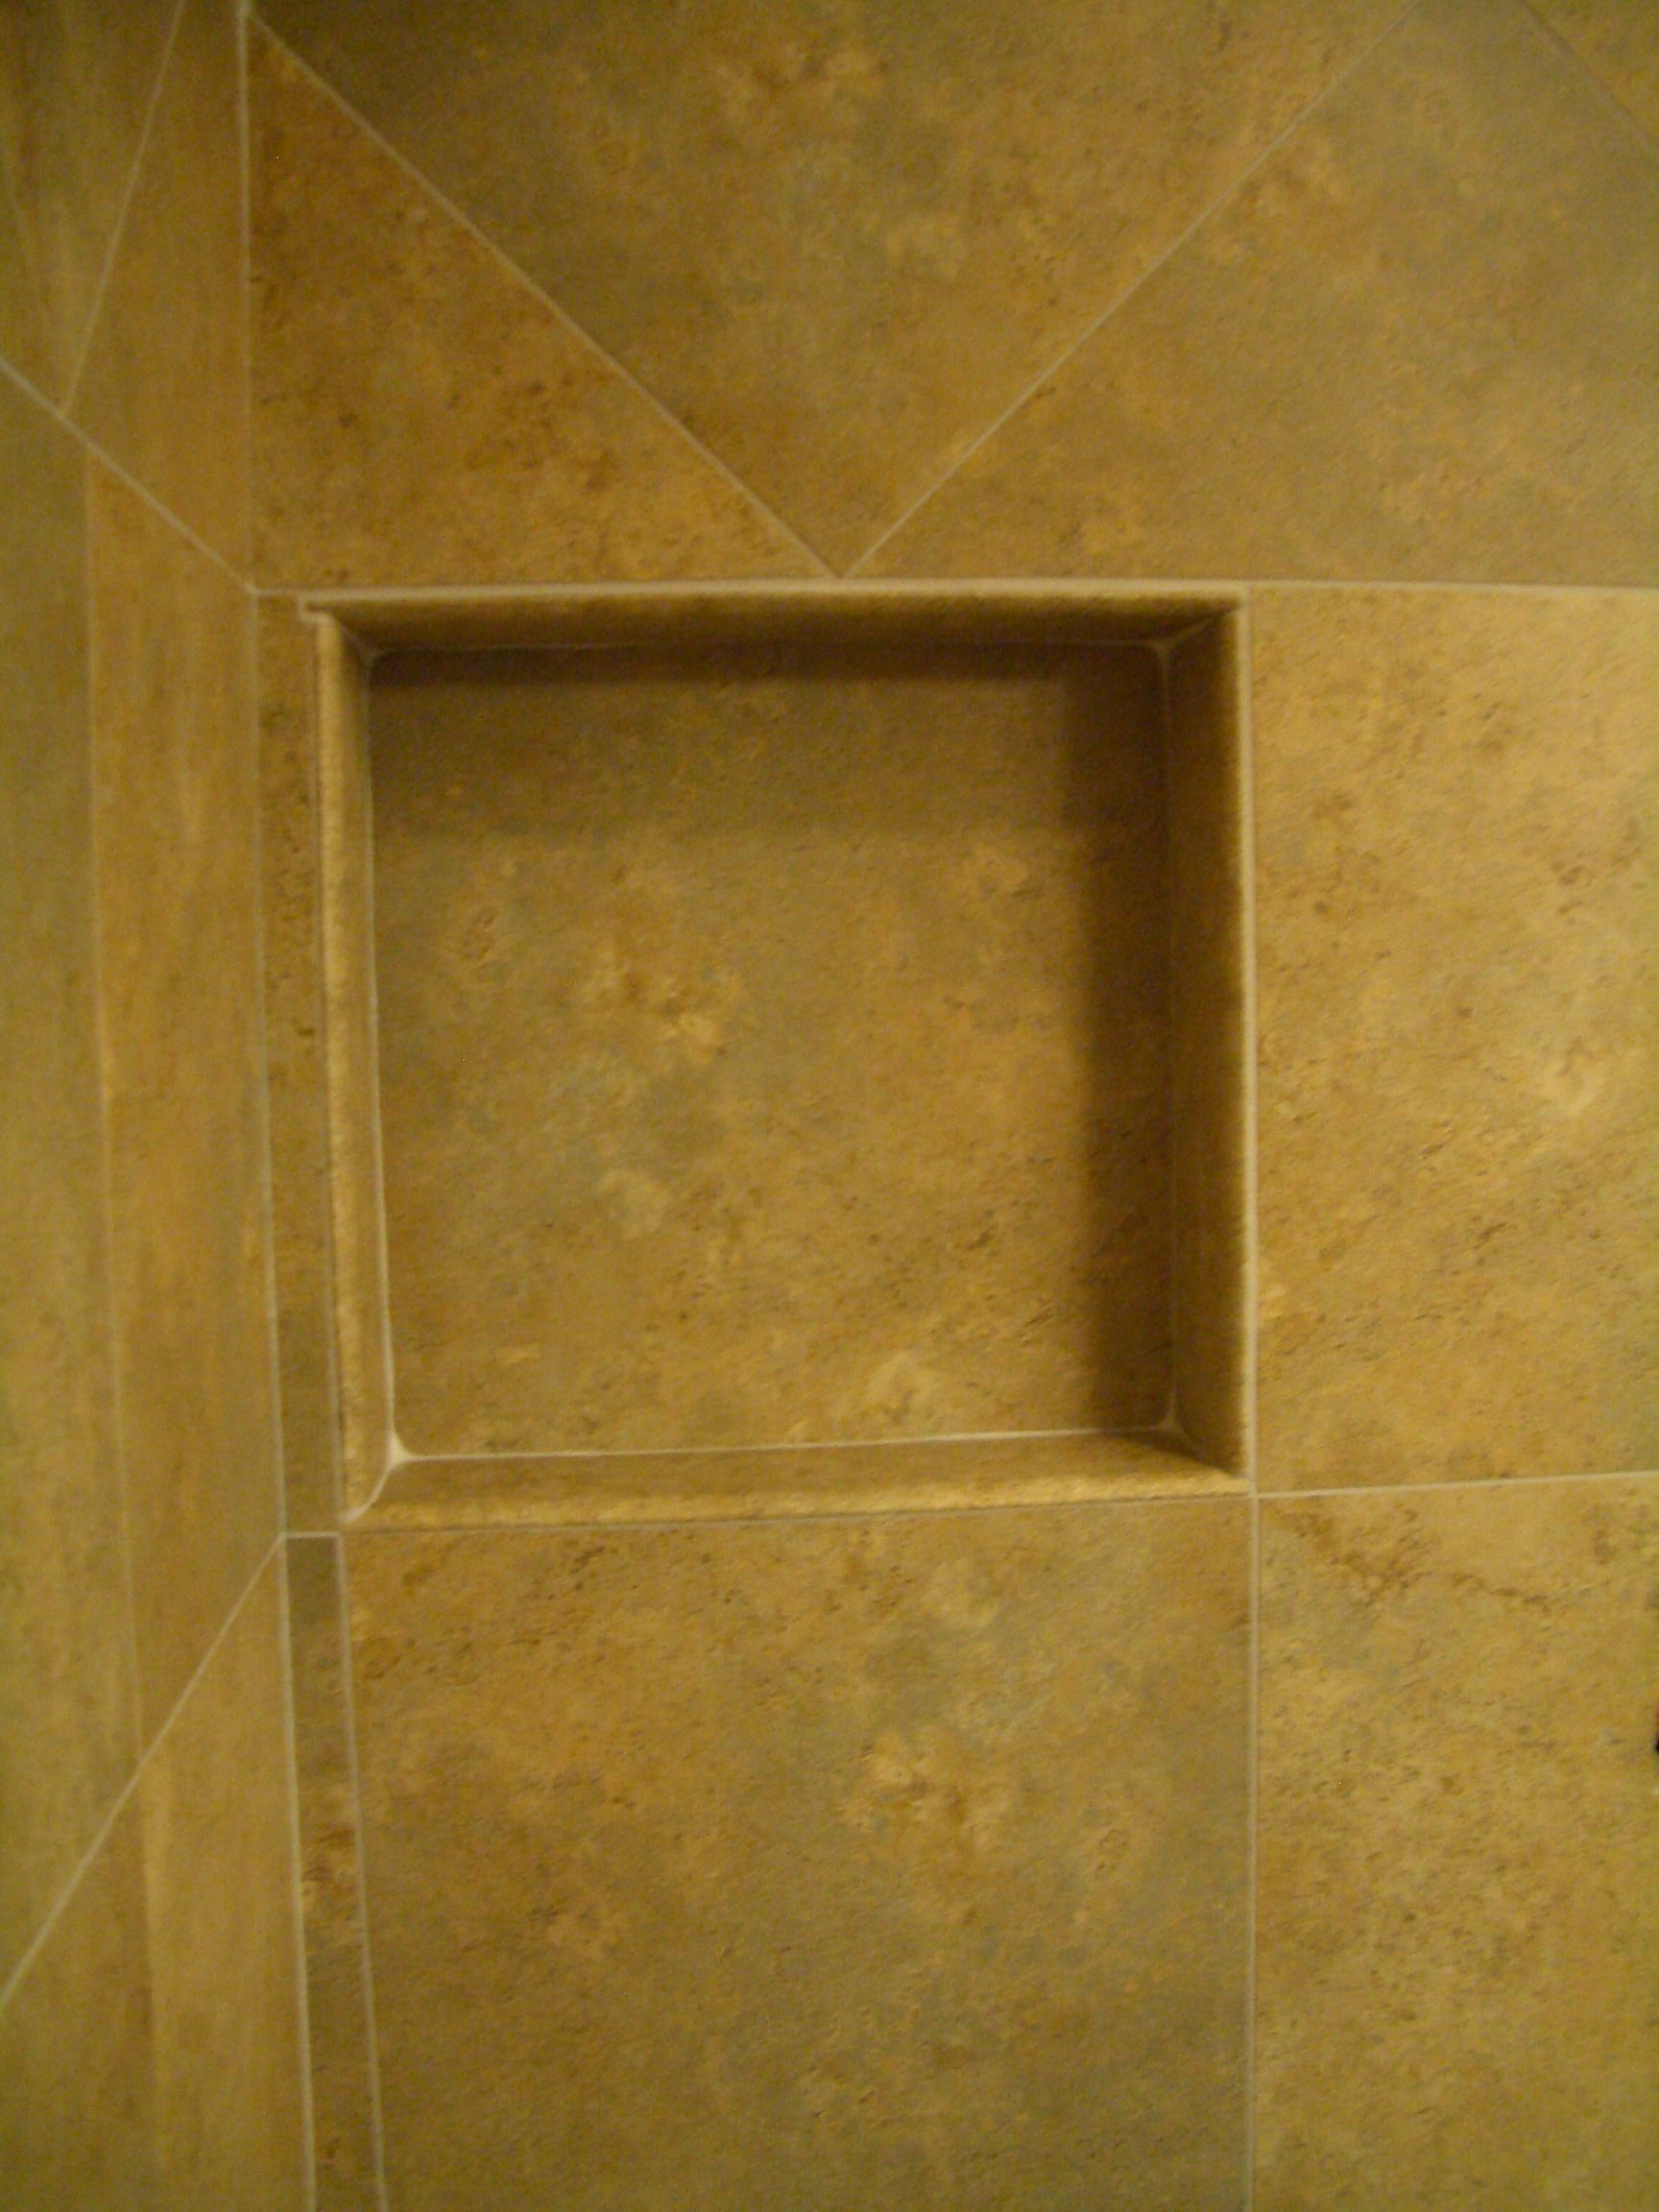 shower niche ideas | How to Build a Niche for your Shower – Part 4 ...